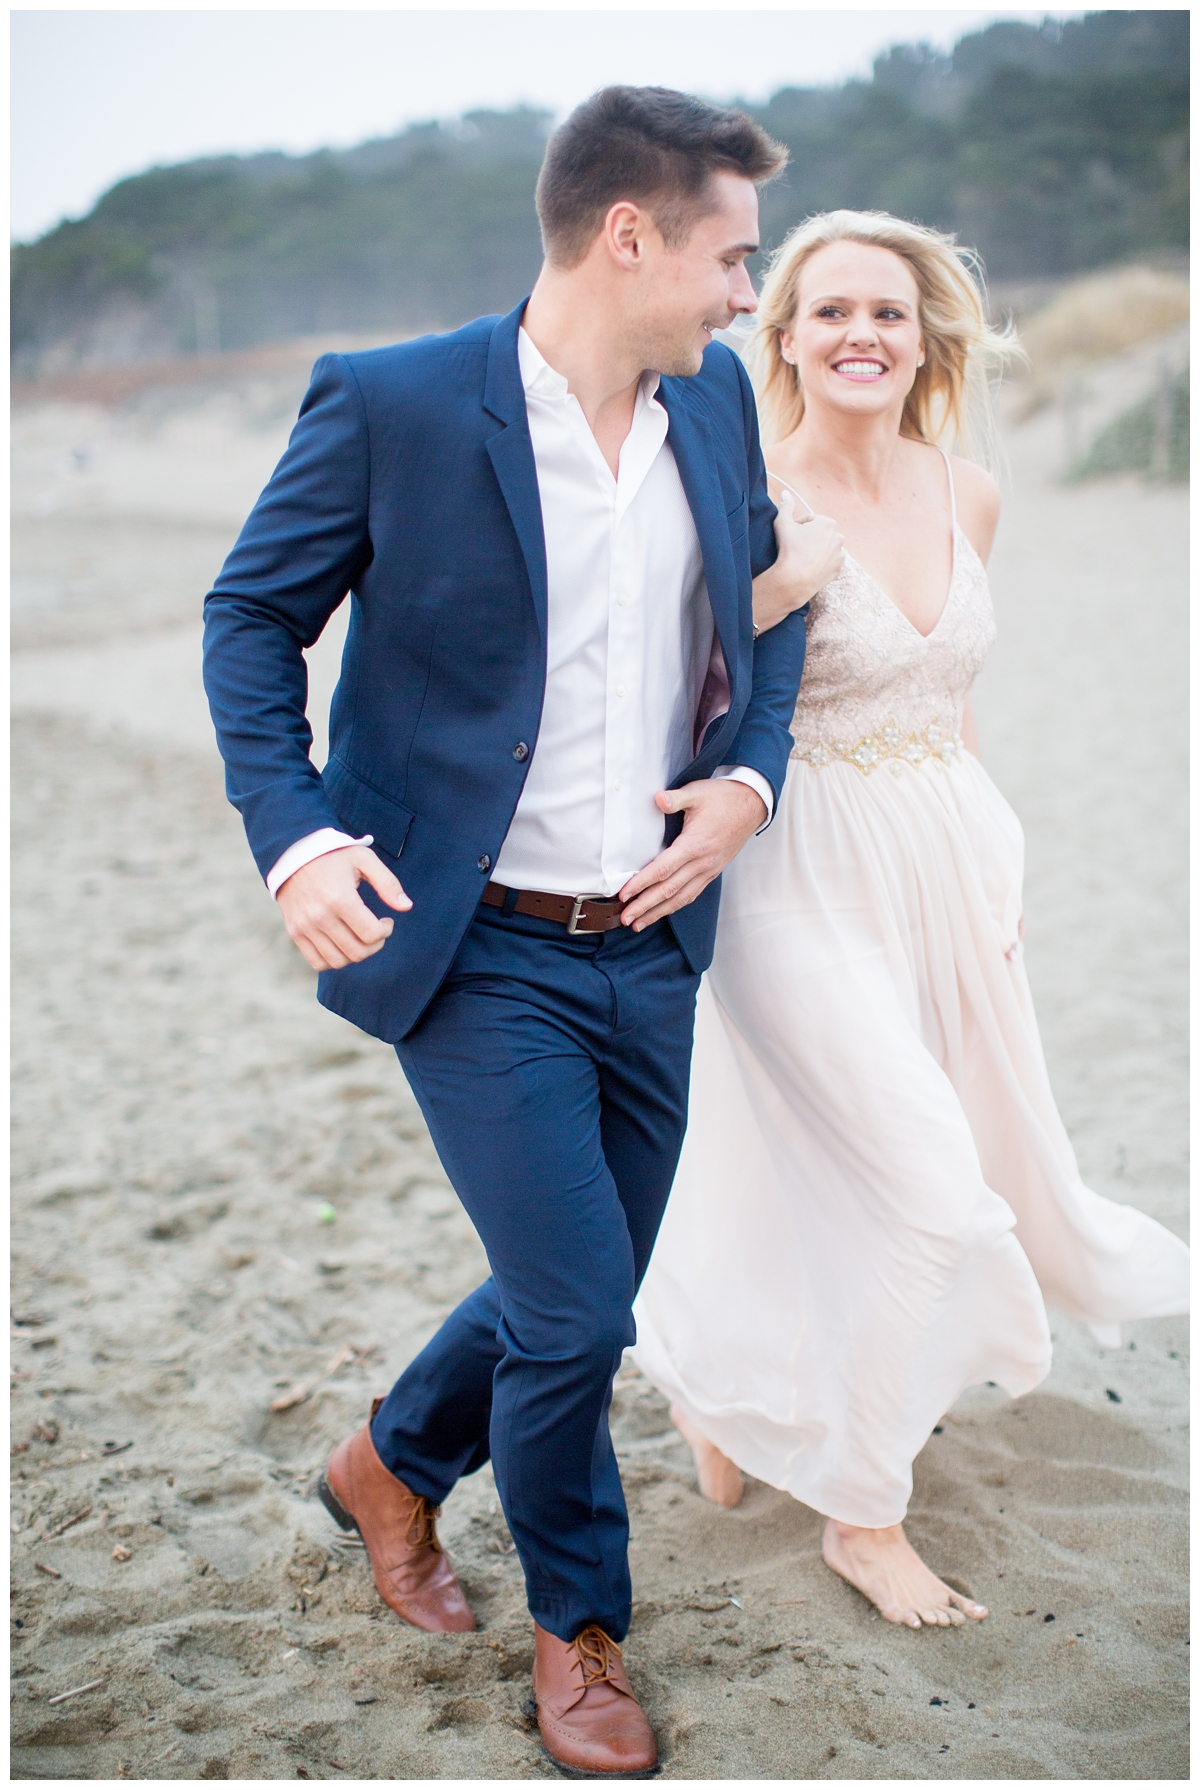 Baker-Beach-San-Francisco-Engagement-Photos_6413.jpg